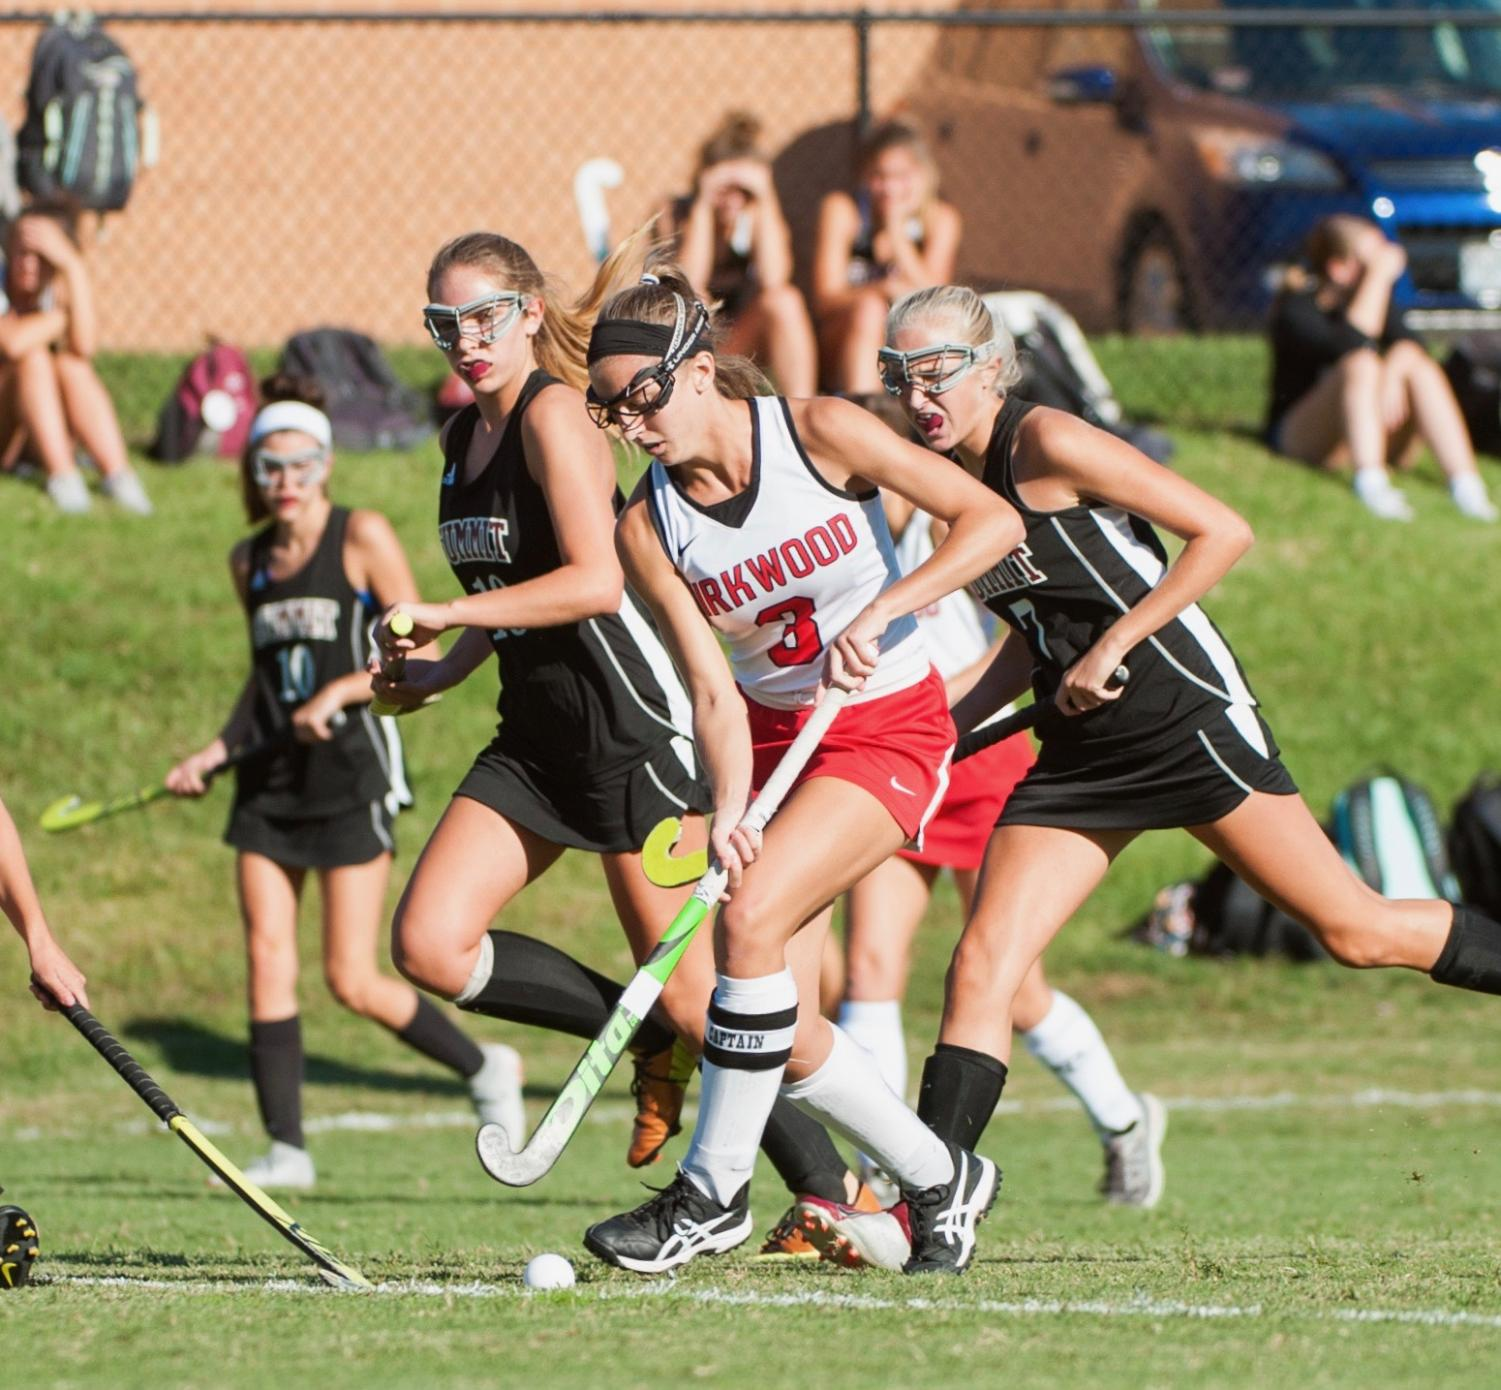 Cate Camenzind, senior, dribbles the ball down the field.